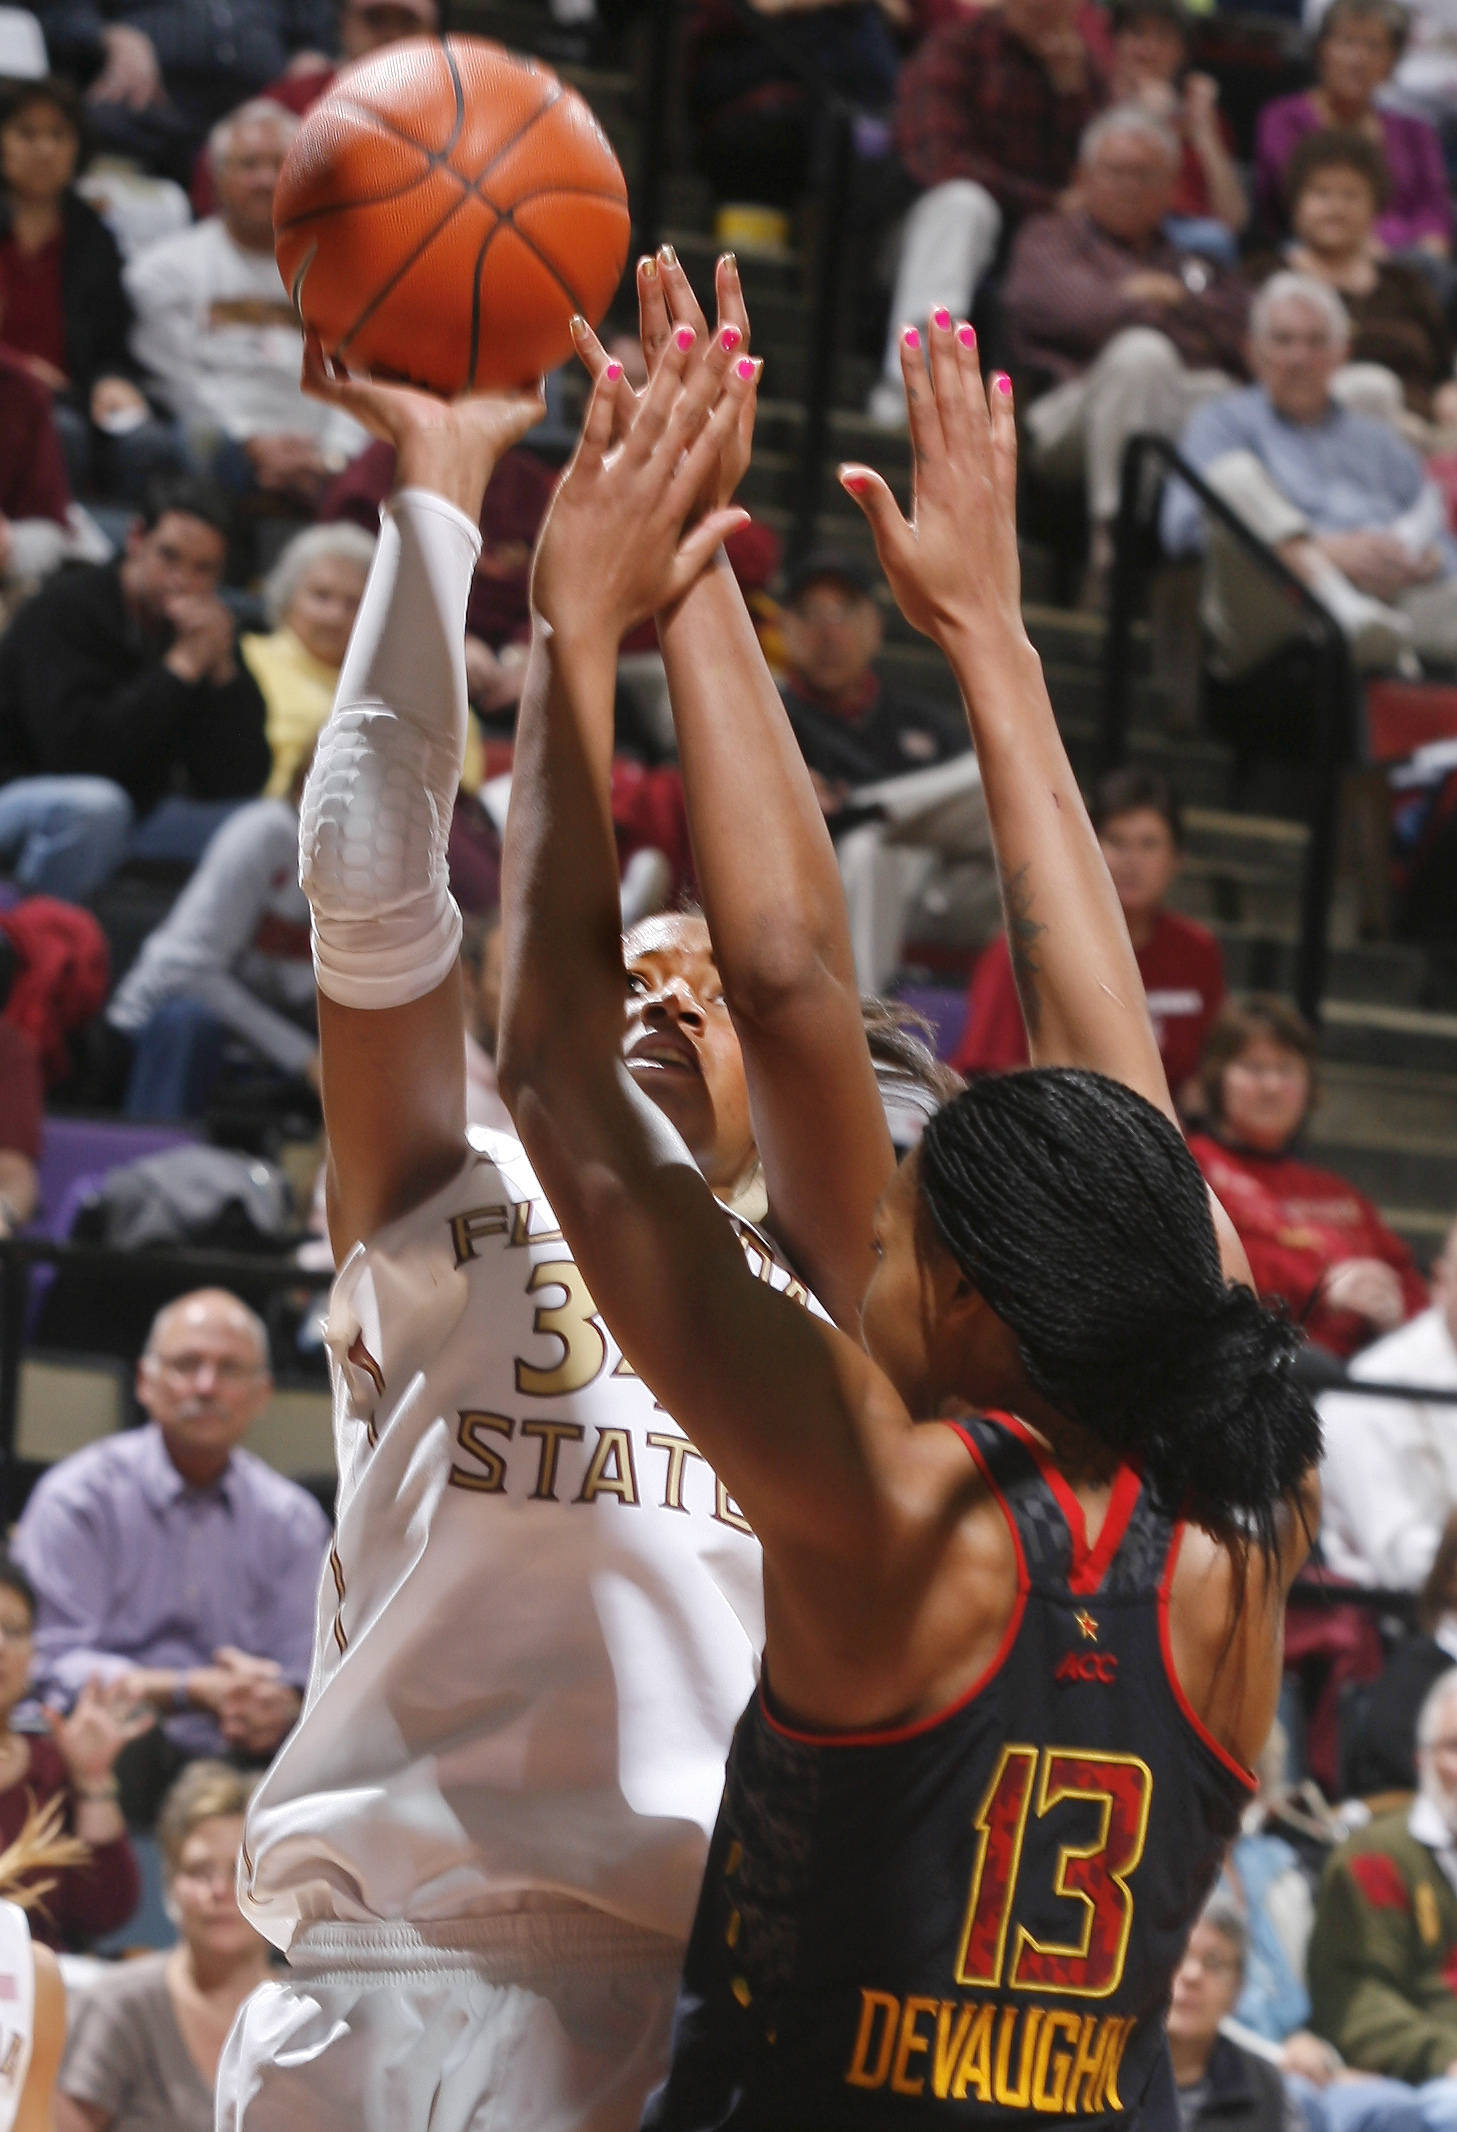 Florida State forward Chelsea Davis (34) is fouled by Maryland center Alicia DeVaughn (13) as she tries a layup in the second half. (AP Photo/Phil Sears)